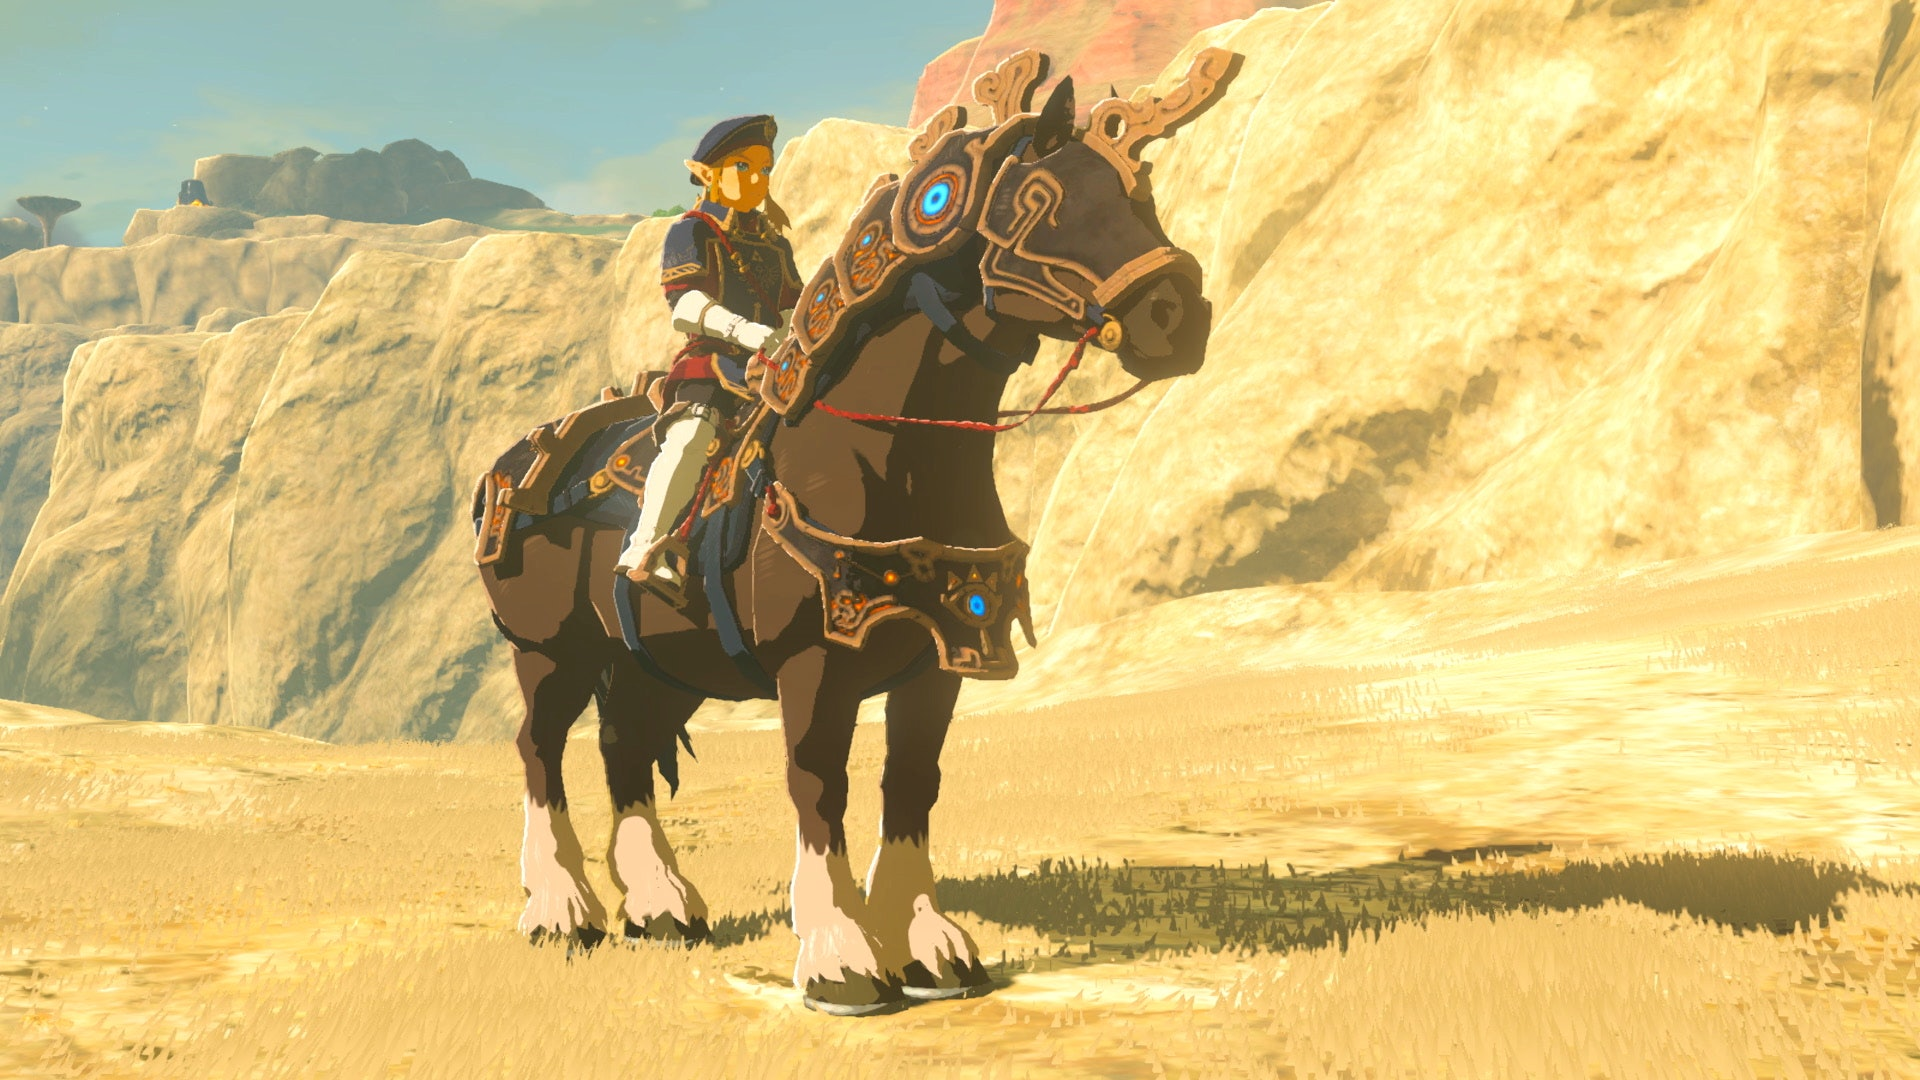 Breath Of The Wild 2 Release Date Should Add A Weirdly Fun Red Dead 2 Feature